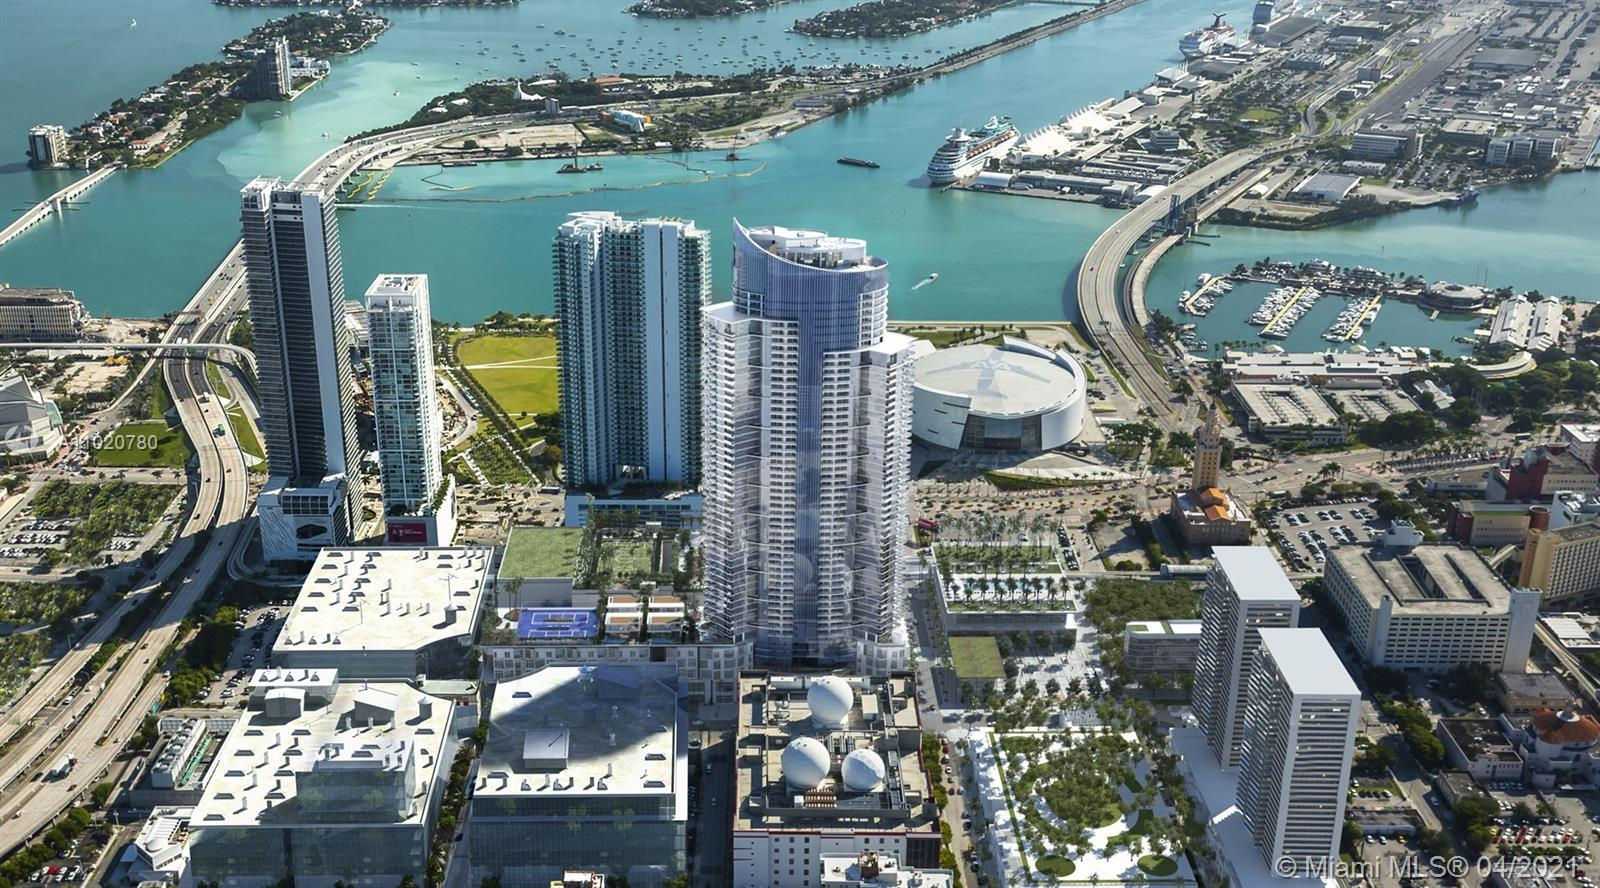 PARAMOUNT Miami Worldcenter, Ultra-chic High-rise, 58 stories of luxury. The building with the most